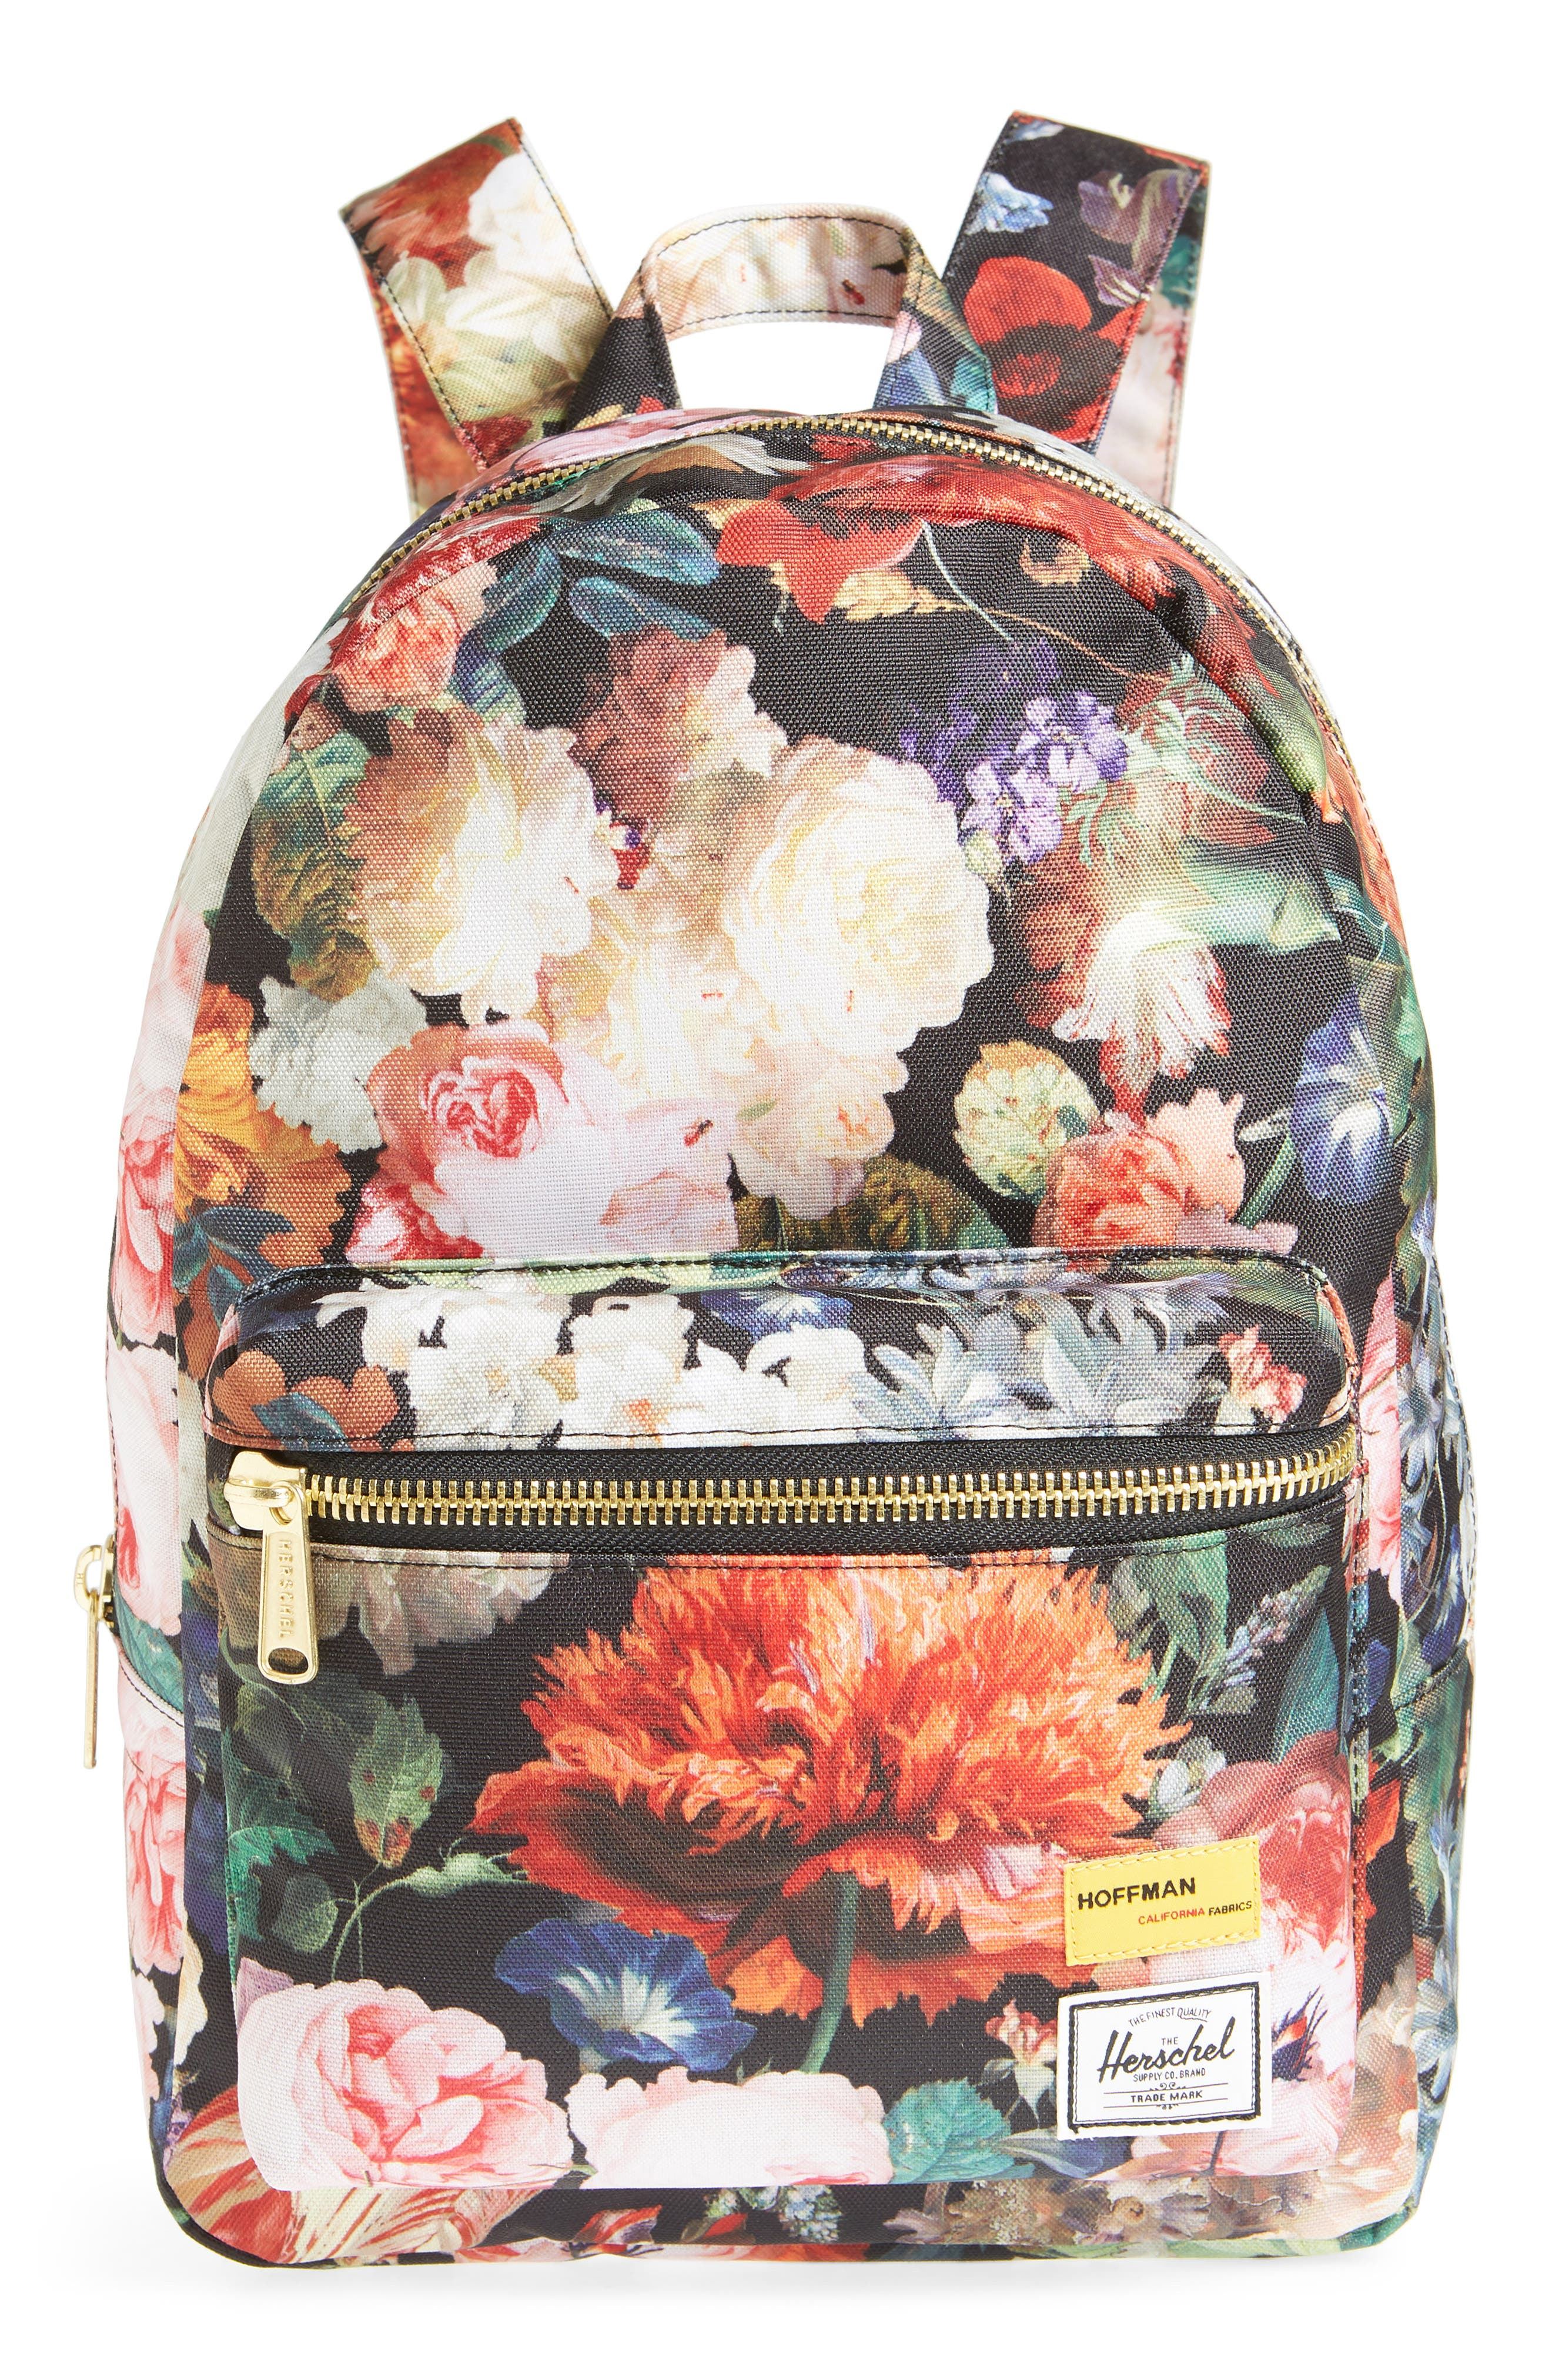 x Hoffman Extra Small Grove Backpack,                             Main thumbnail 1, color,                             827